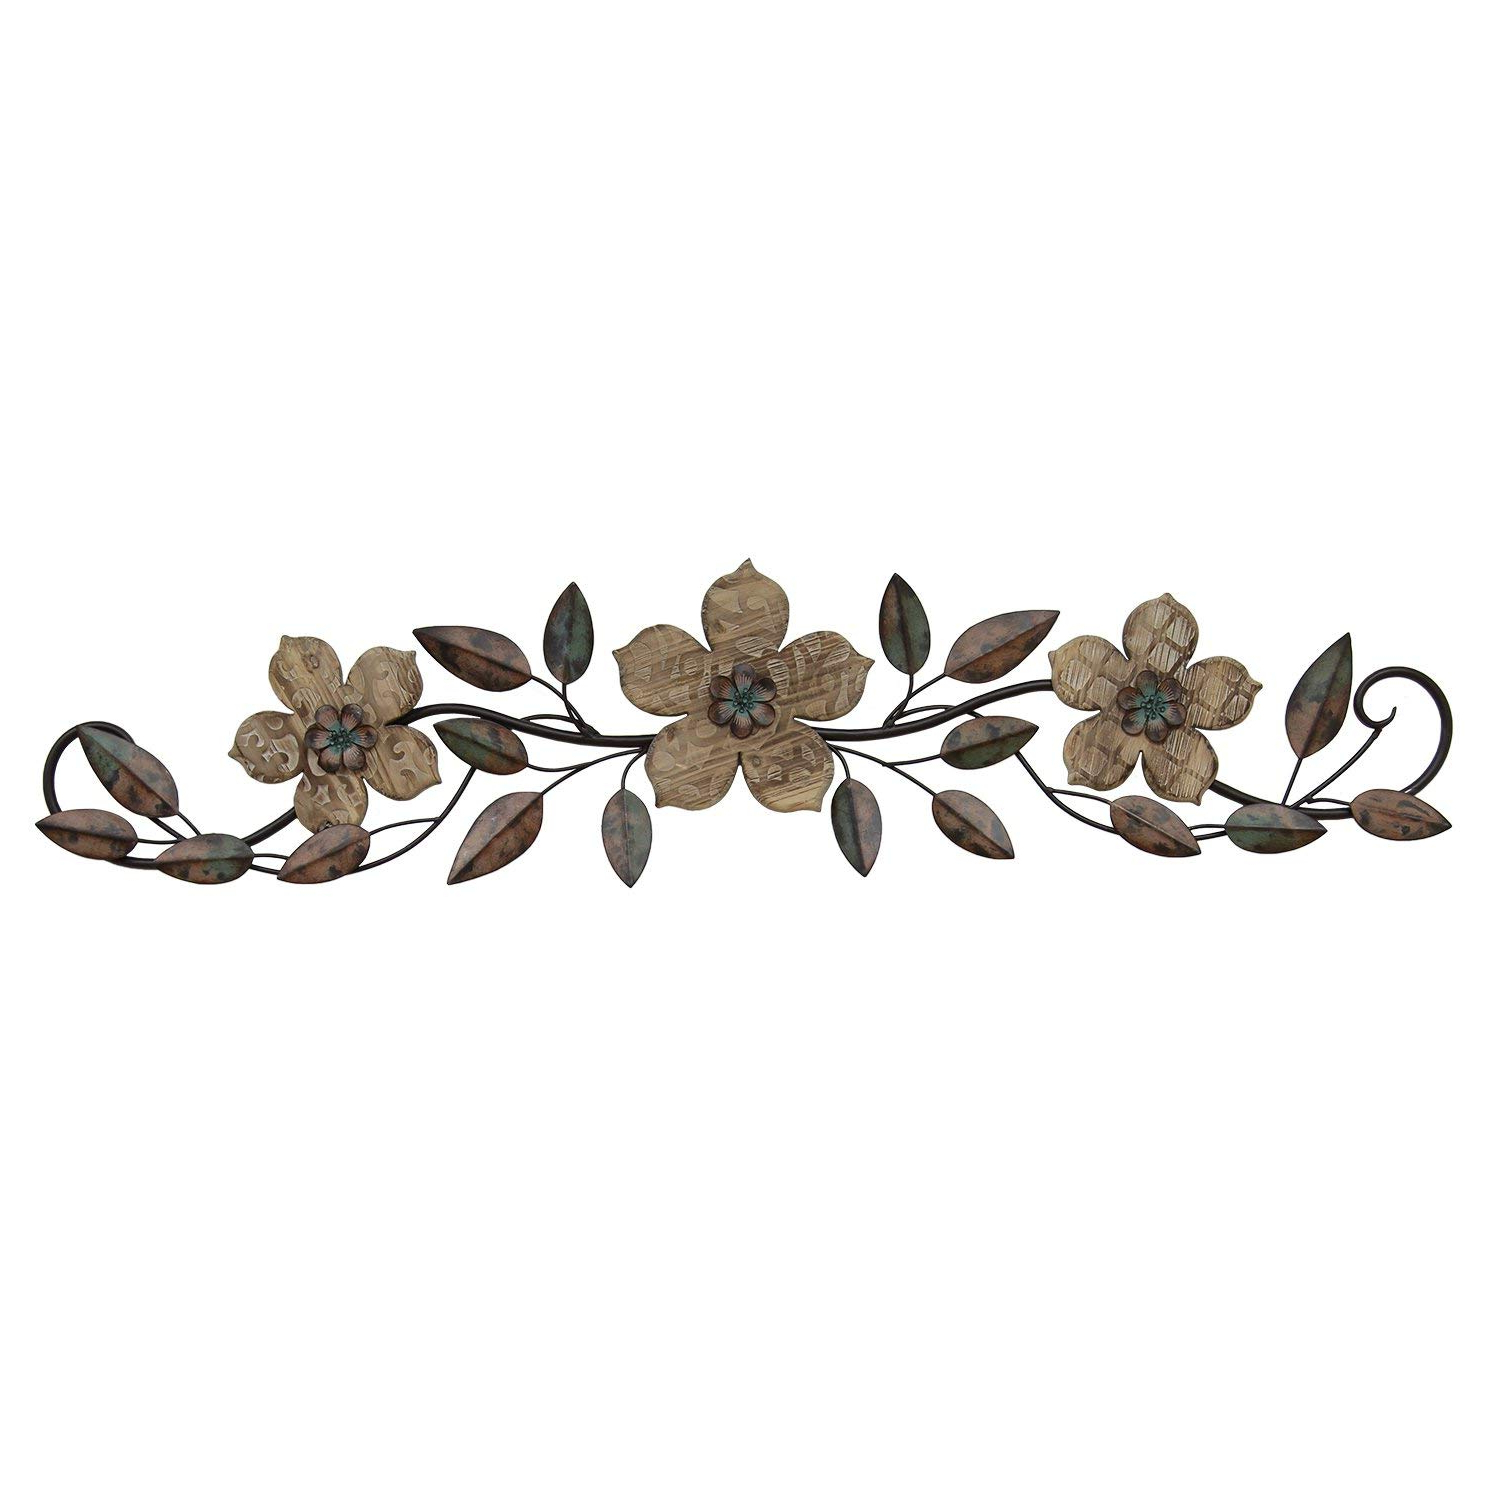 Well Known Floral Patterned Over The Door Wall Decor Within Amazon: Stratton Home Décor Stratton Home S01207 Floral (Gallery 2 of 20)